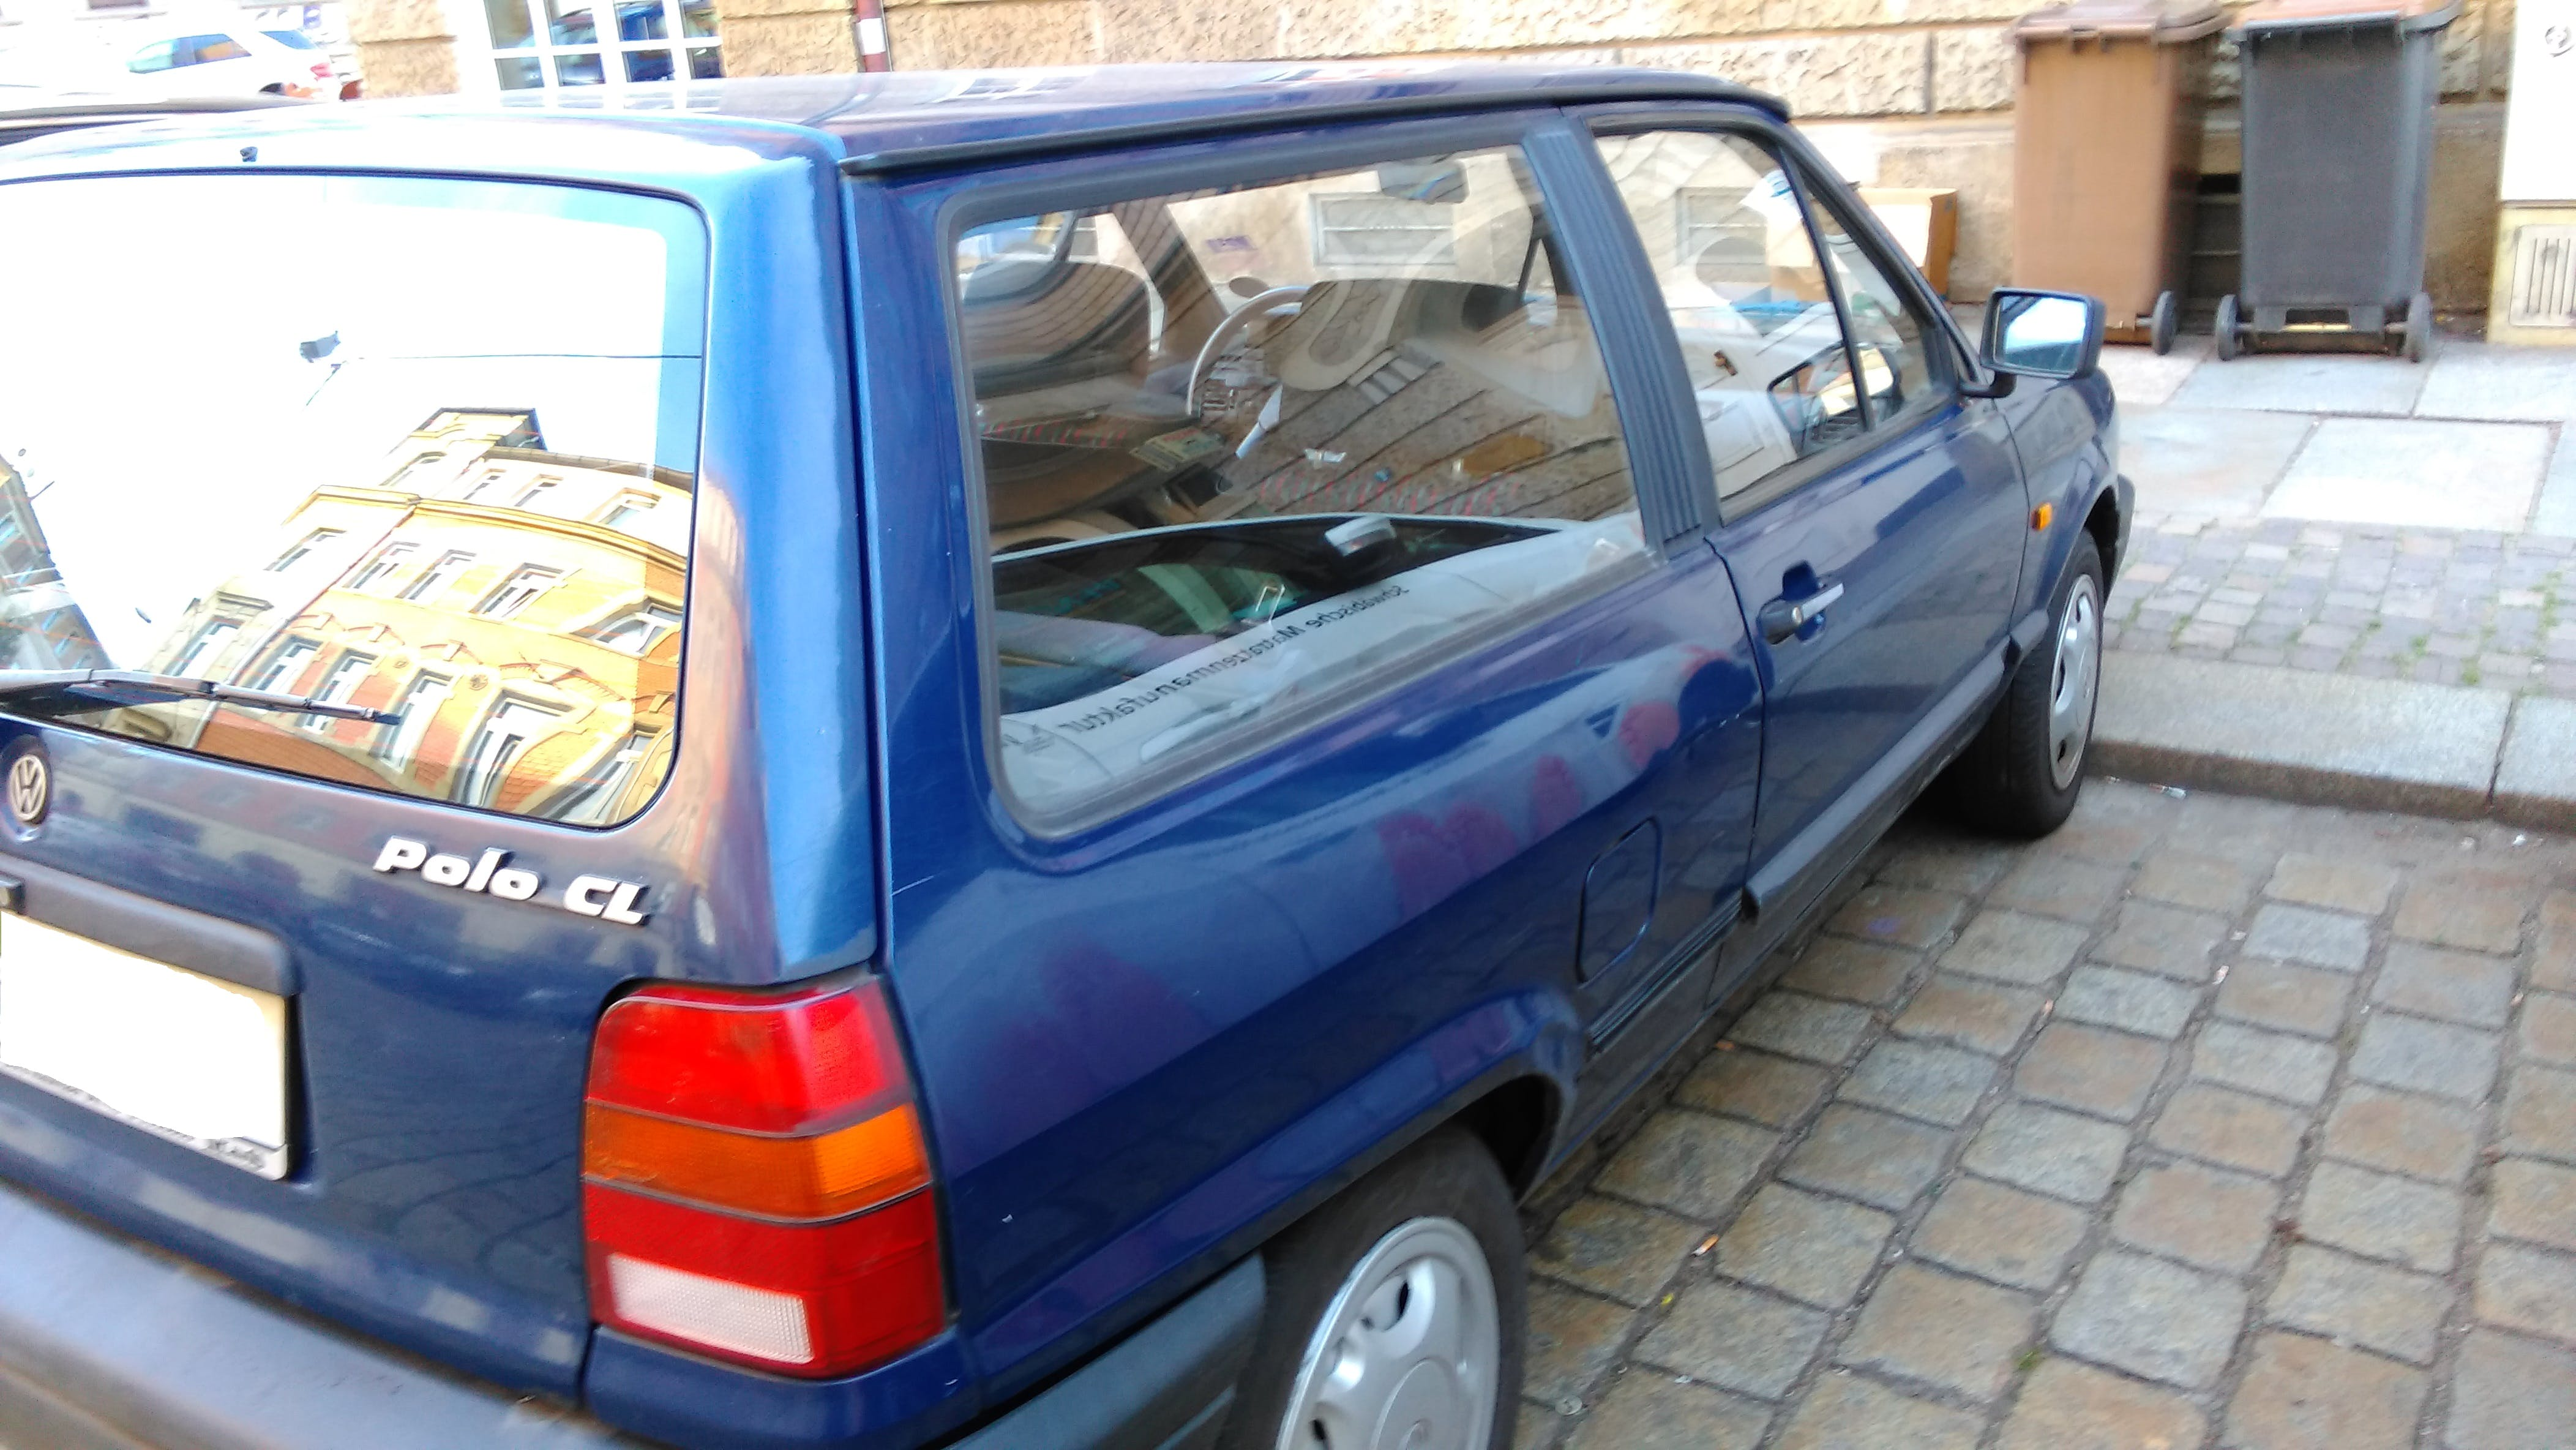 Volkswagen Polo 86c 2F mit Audio-/iPod-Zugang